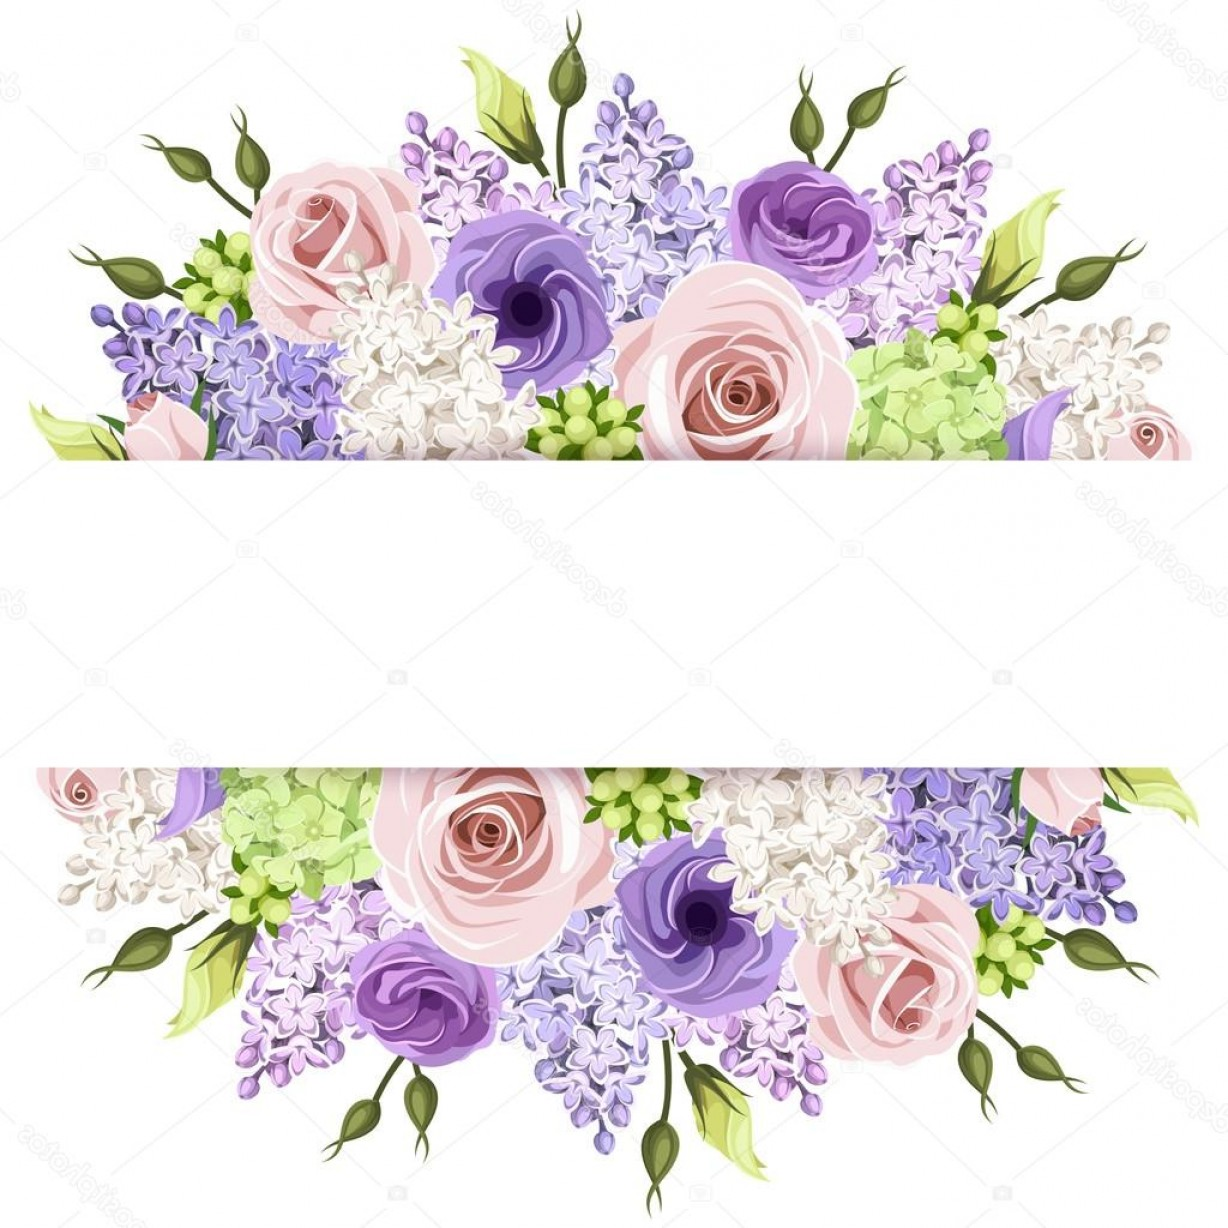 Purple Green And White Vector: Stock Illustration Background With Pink Purple And